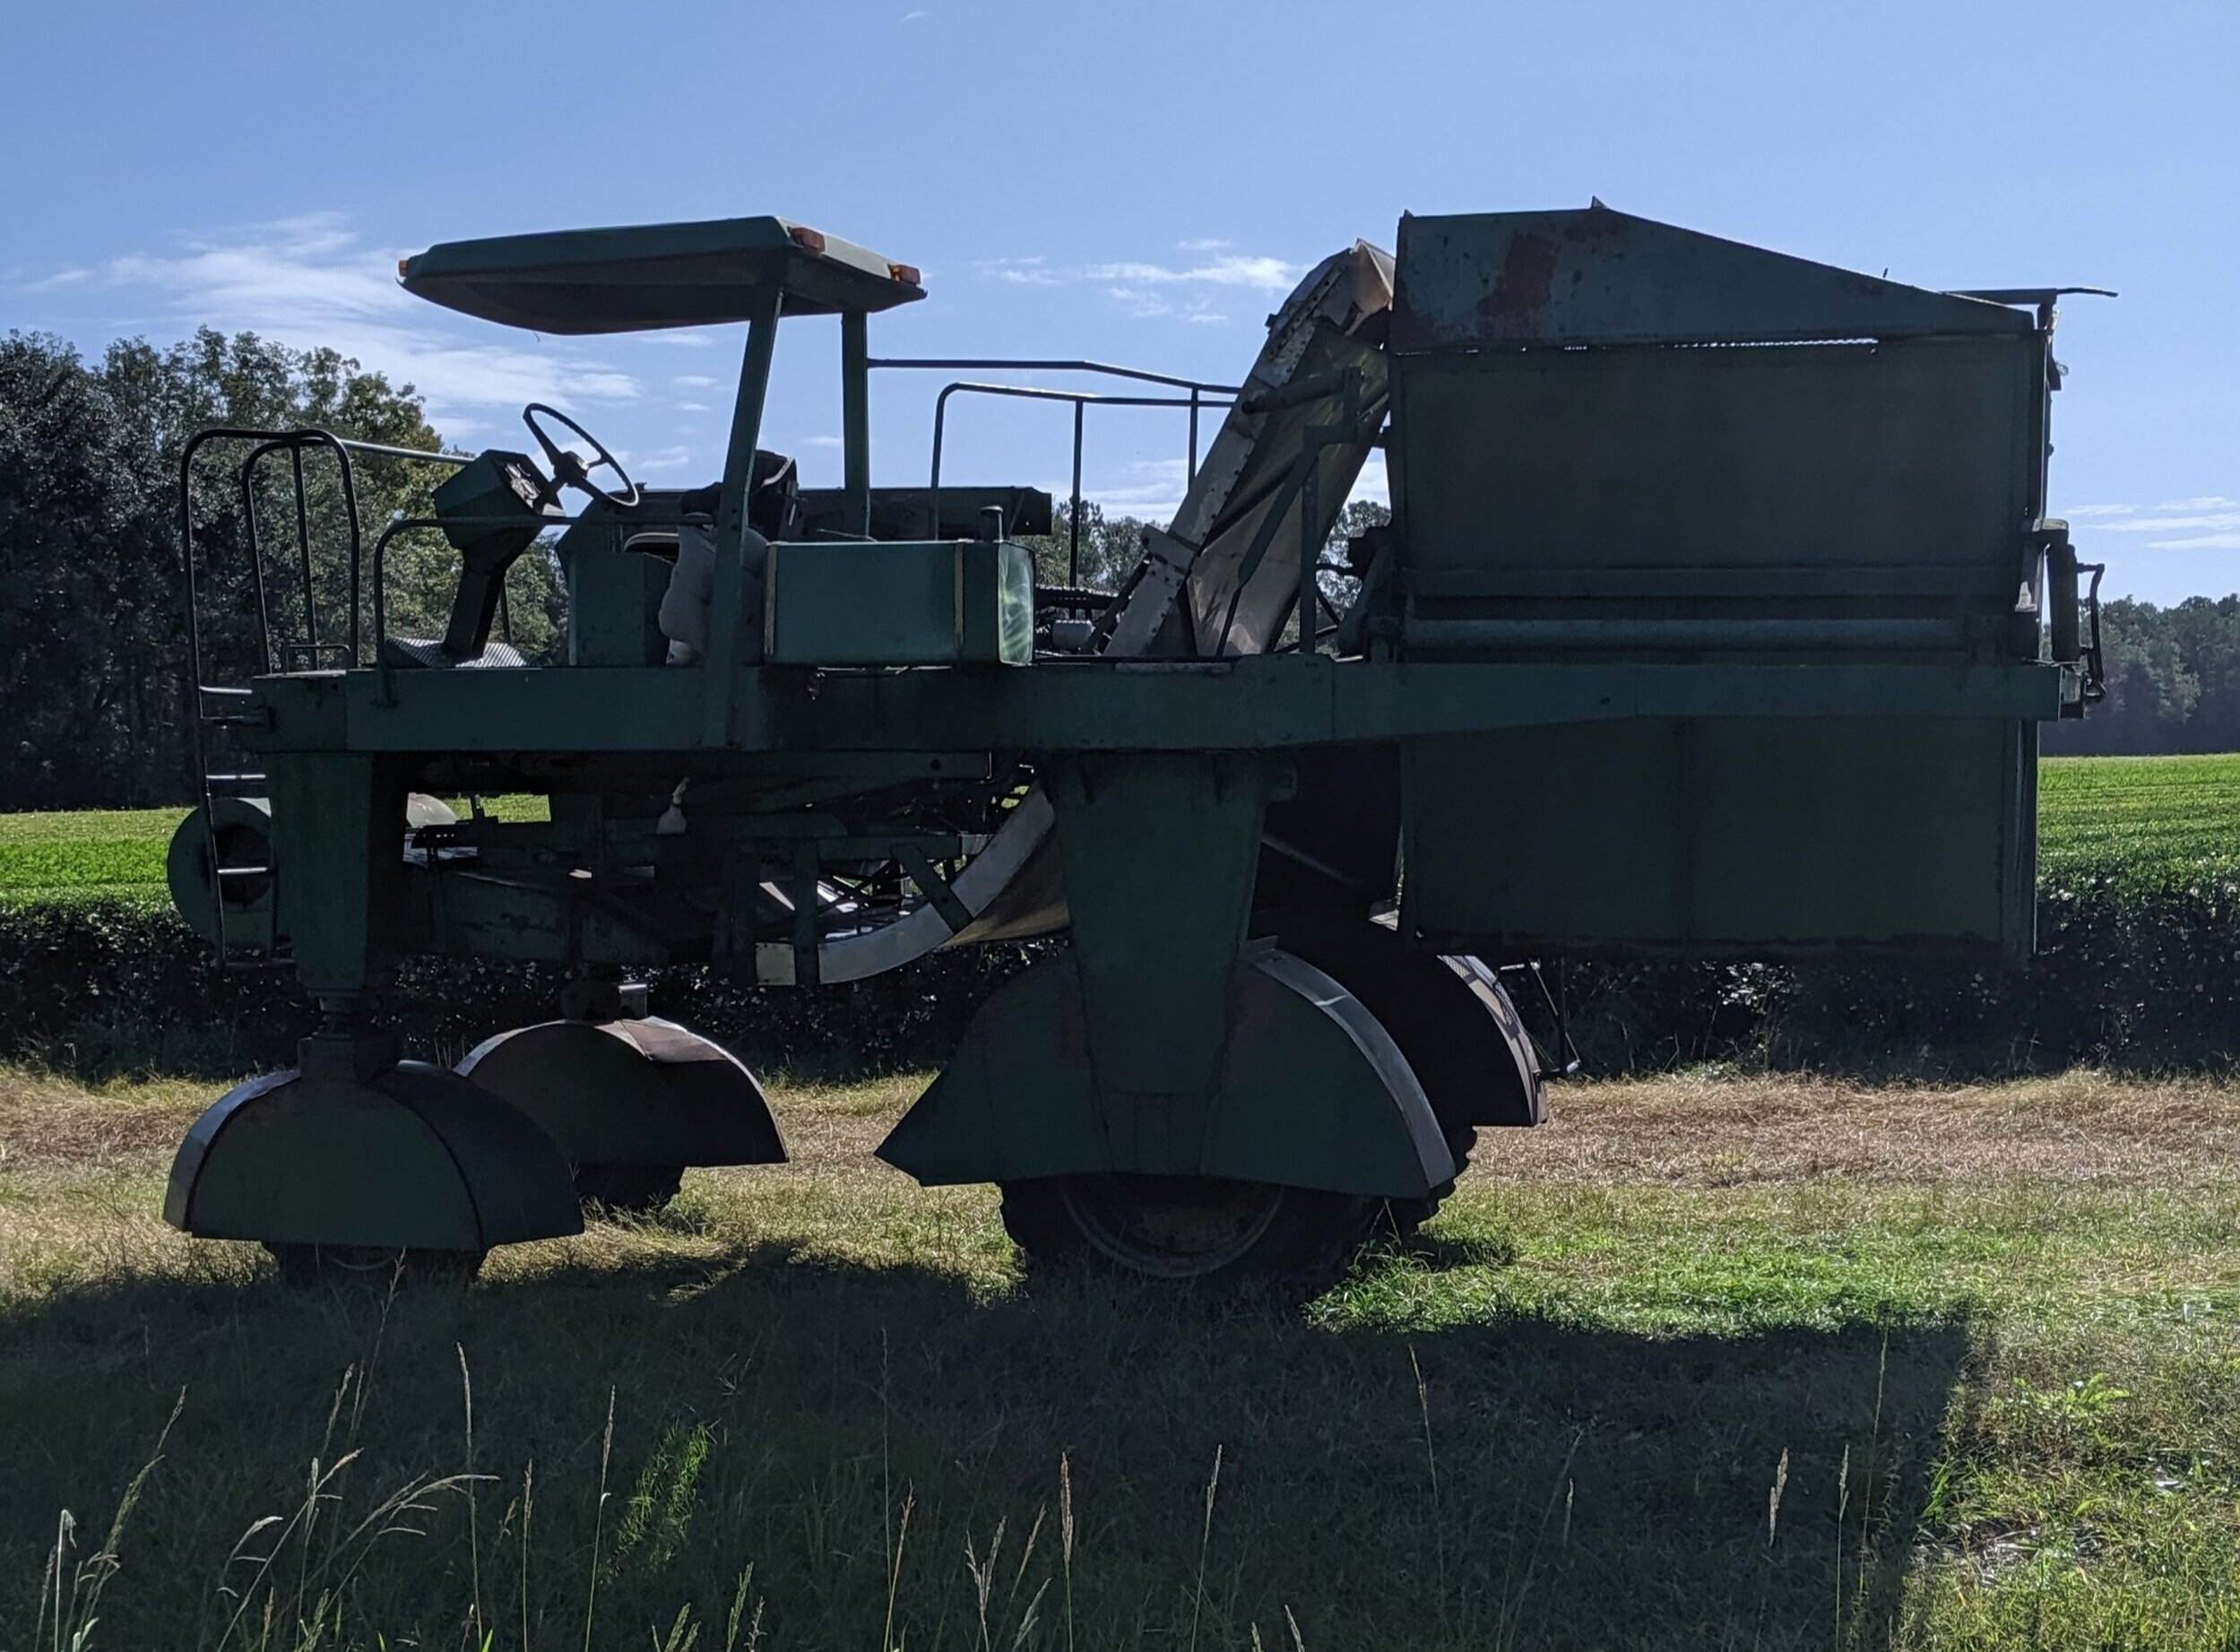 This custom built harvester goes over each of the rows—it takes only 4 guys to work the fields. One to run the harvester, two to walk ahead and weed, and one to drive a pickup to transfer the resulting loads to the plant.